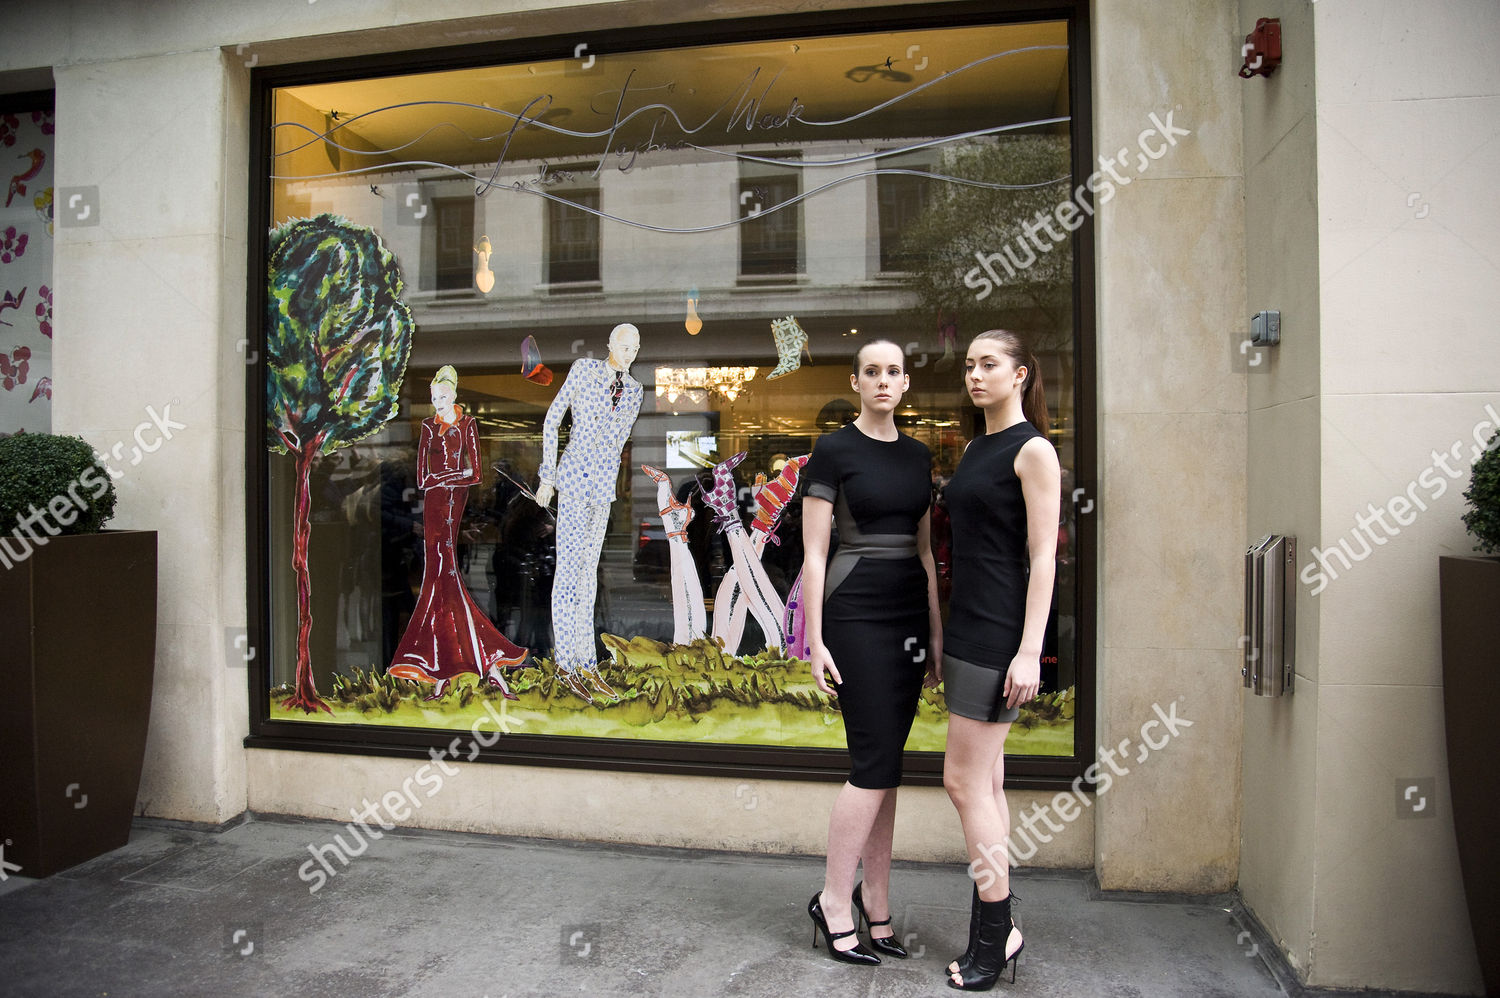 1ad6398755d3f Manolo Blahnik unveils a window display designed by him, for London Fashion  Week. May Fair hotel, London, Britain Imagen de stock de Ray Tang para uso  ...